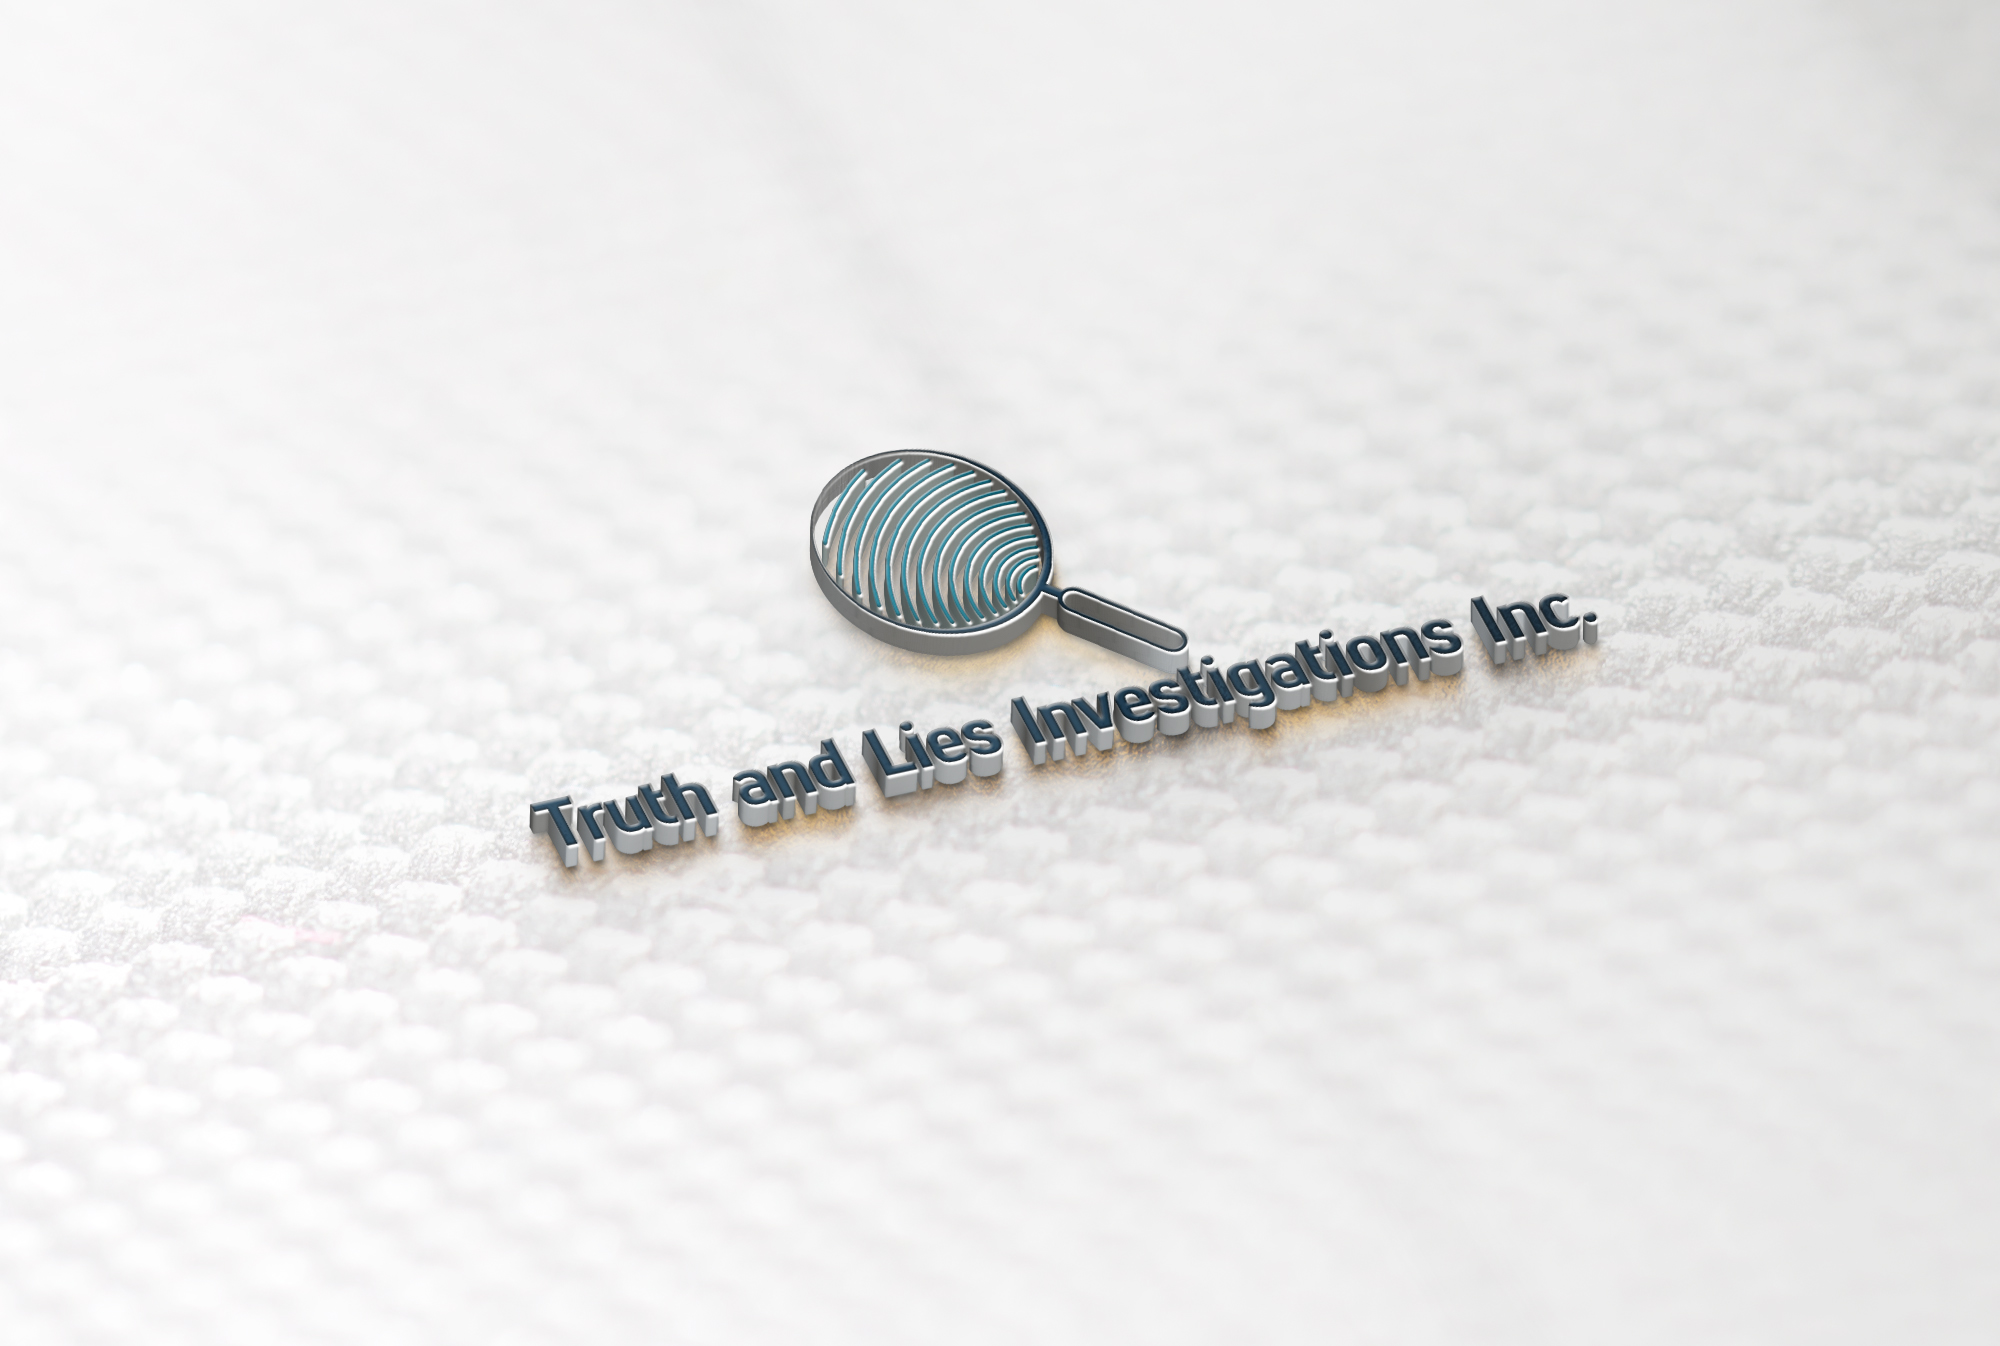 Truth-and-Lies-Investigations-Inc-Logo-A2 3D Mock-up